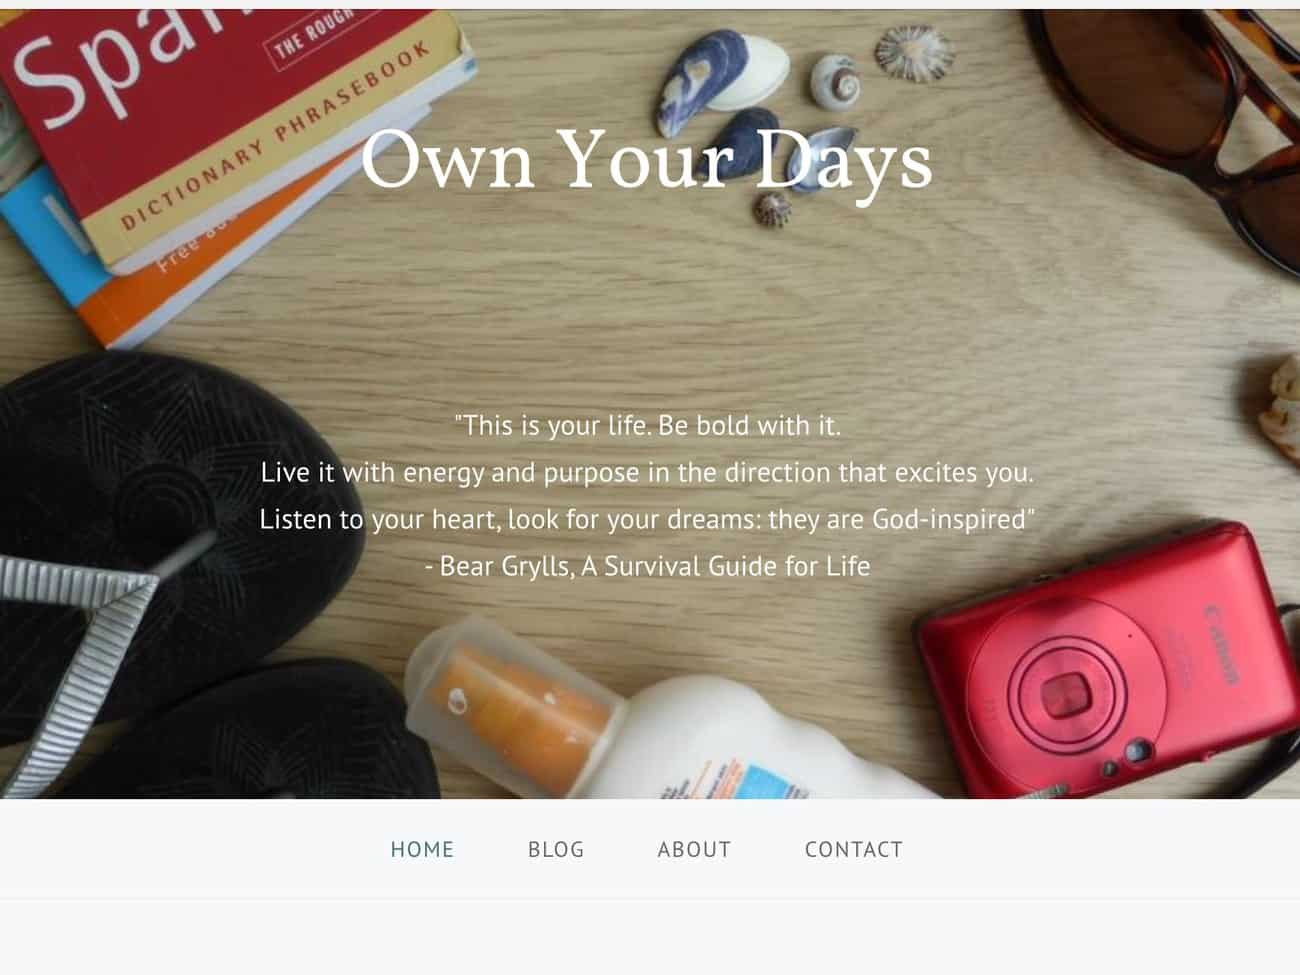 Own Your Days Home Page